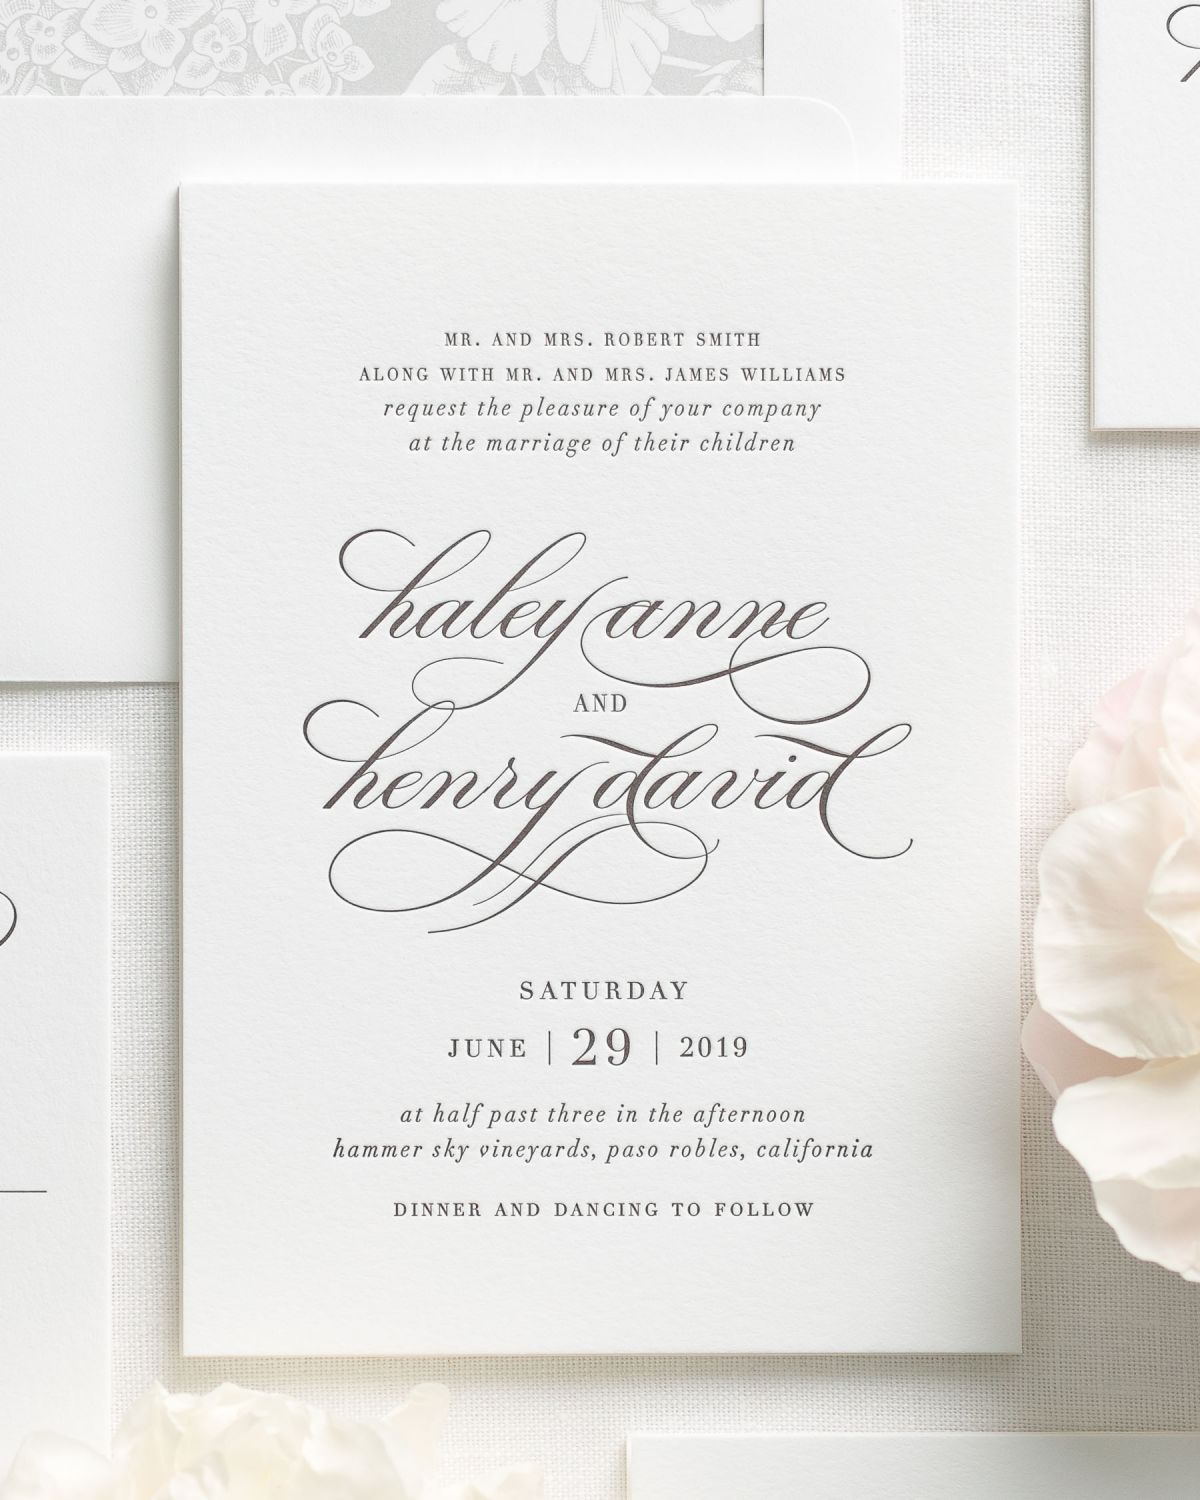 Letterpress Wedding Invitations with Script Names